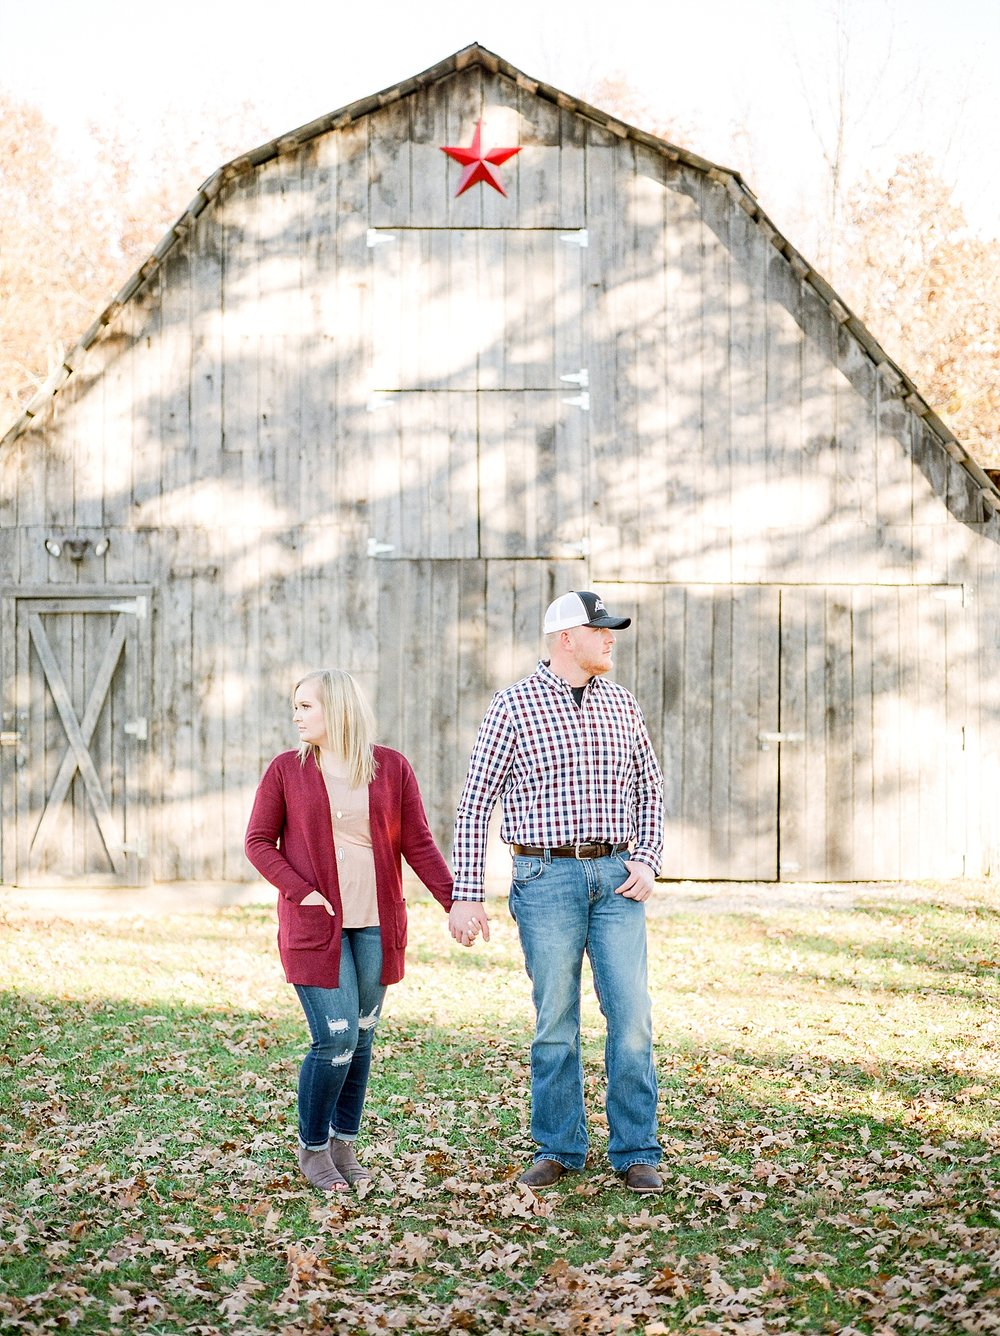 Perfect Sunset Engagement Session in Fall by Kelsi Kliethermes Photography Kansas City Missouri Wedding Photographer_0012.jpg